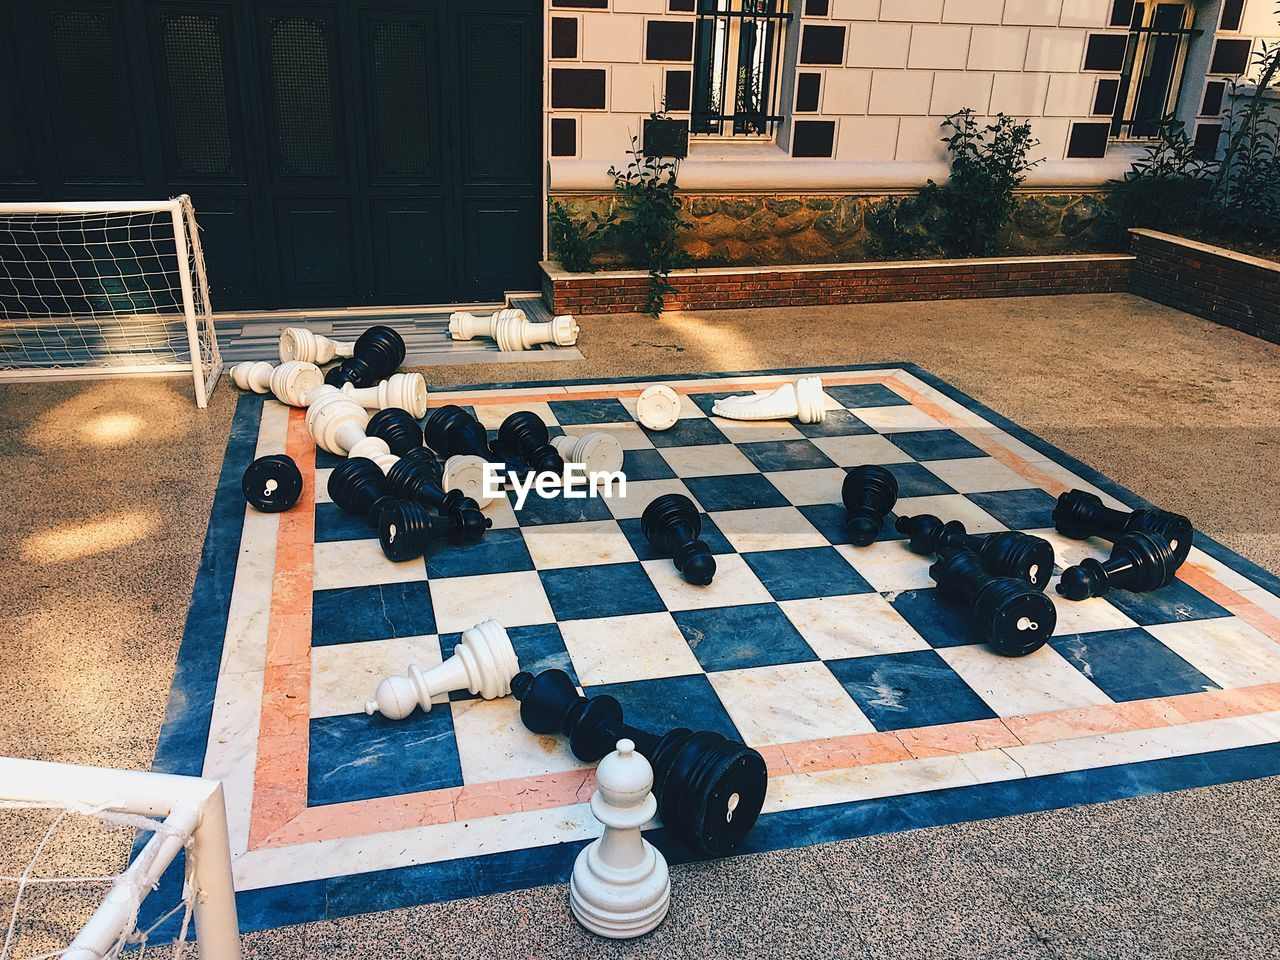 HIGH ANGLE VIEW OF CHESS PLAYING ON FLOOR